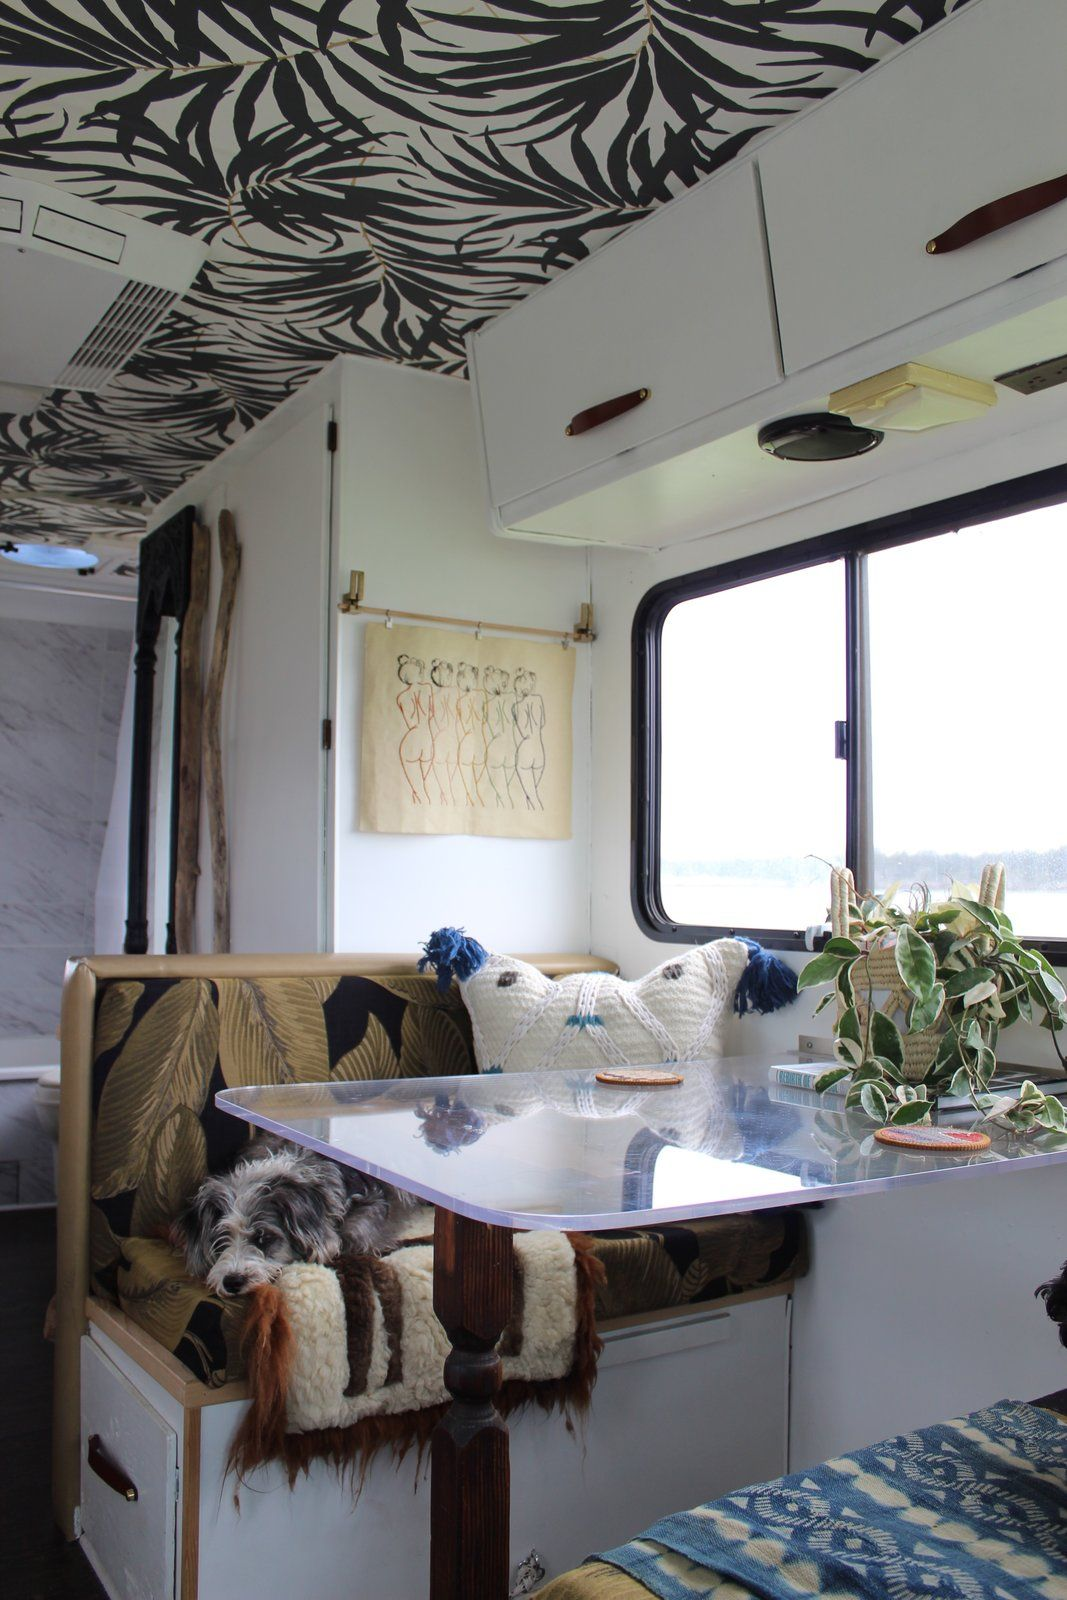 A Portland Couple Renovate A 1982 RV, Turning It Into Their New Home